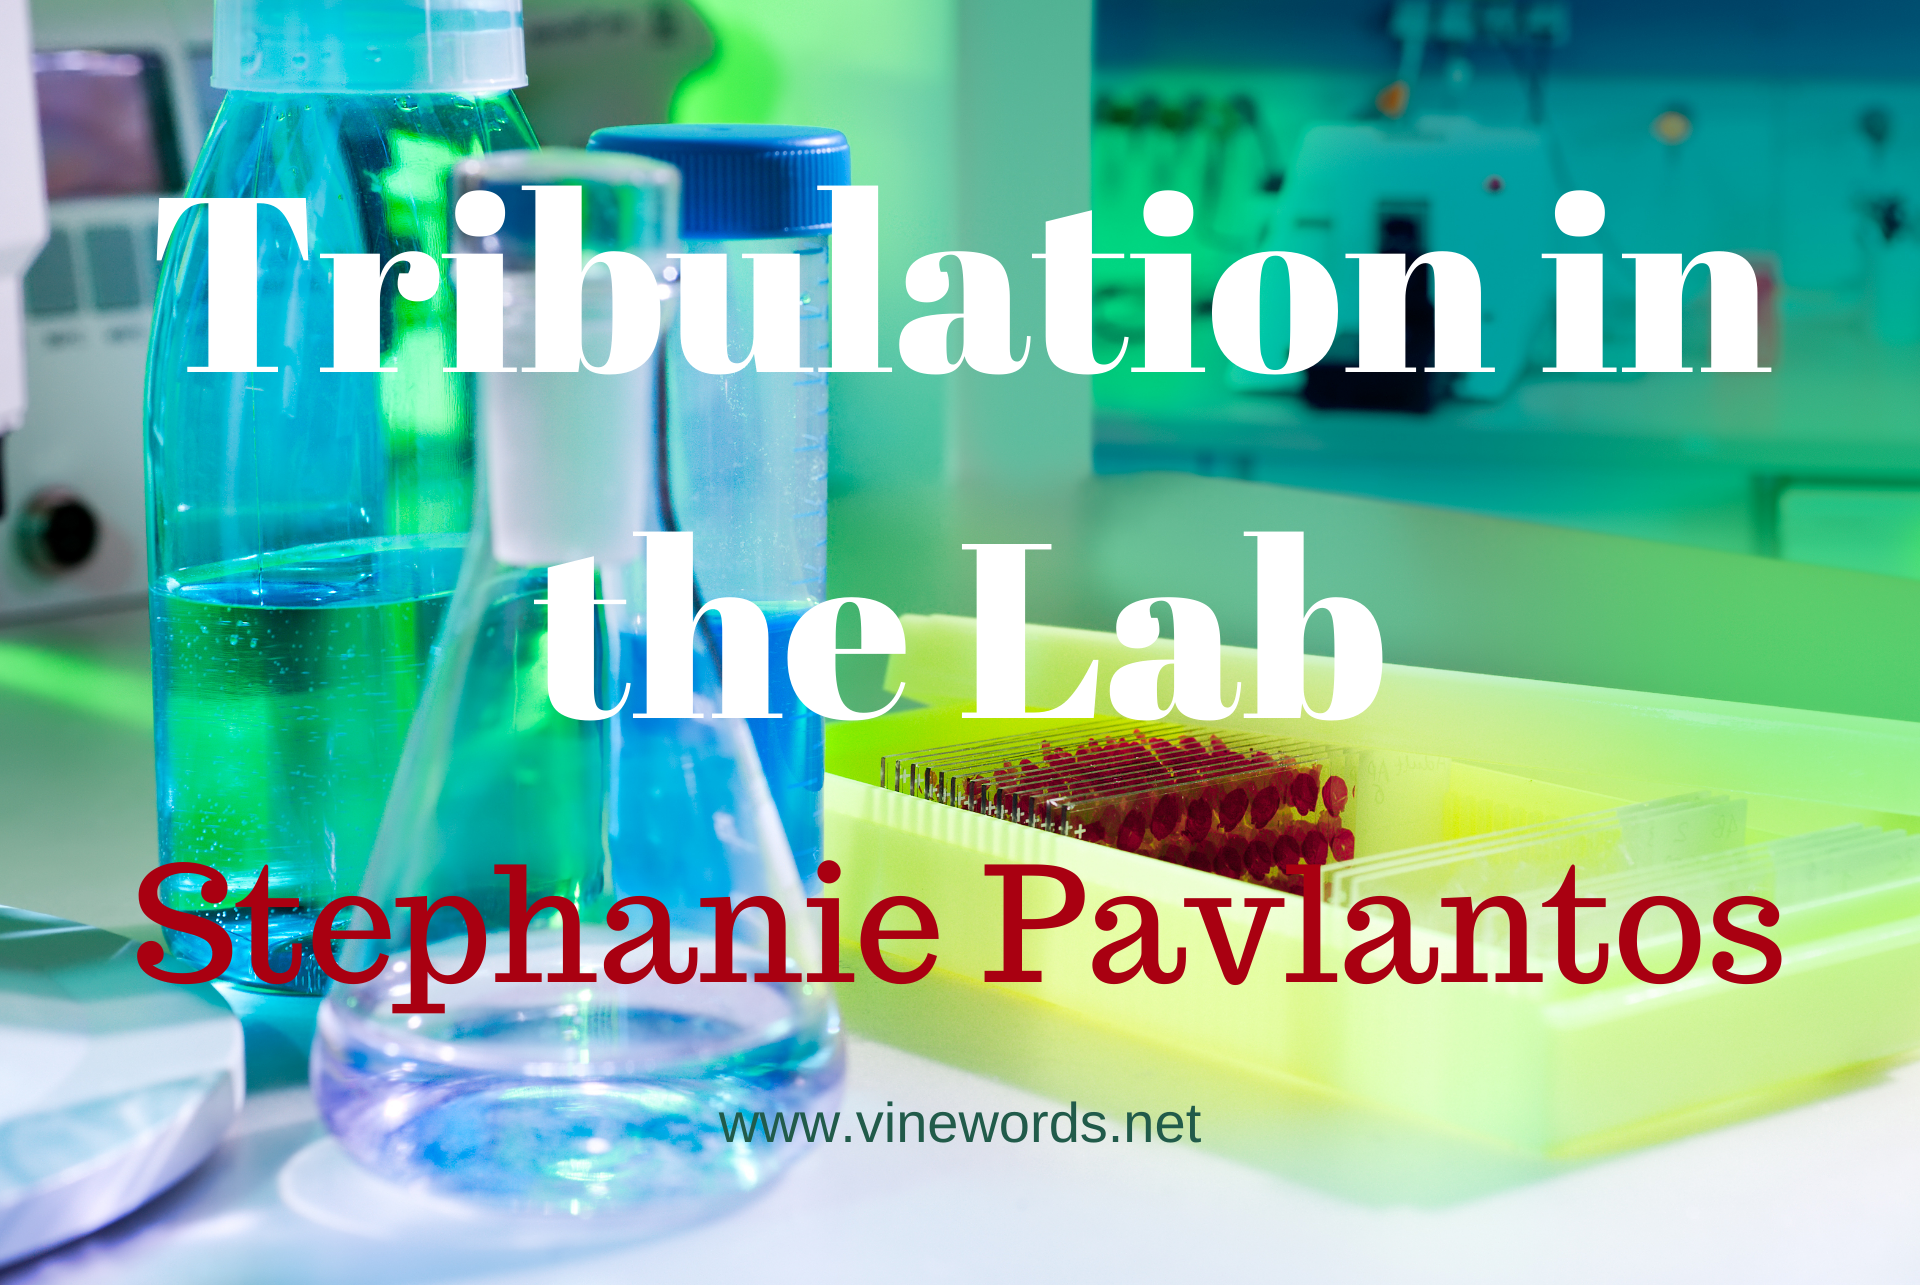 Stephanie Pavlantos: Tribulation in the Lab